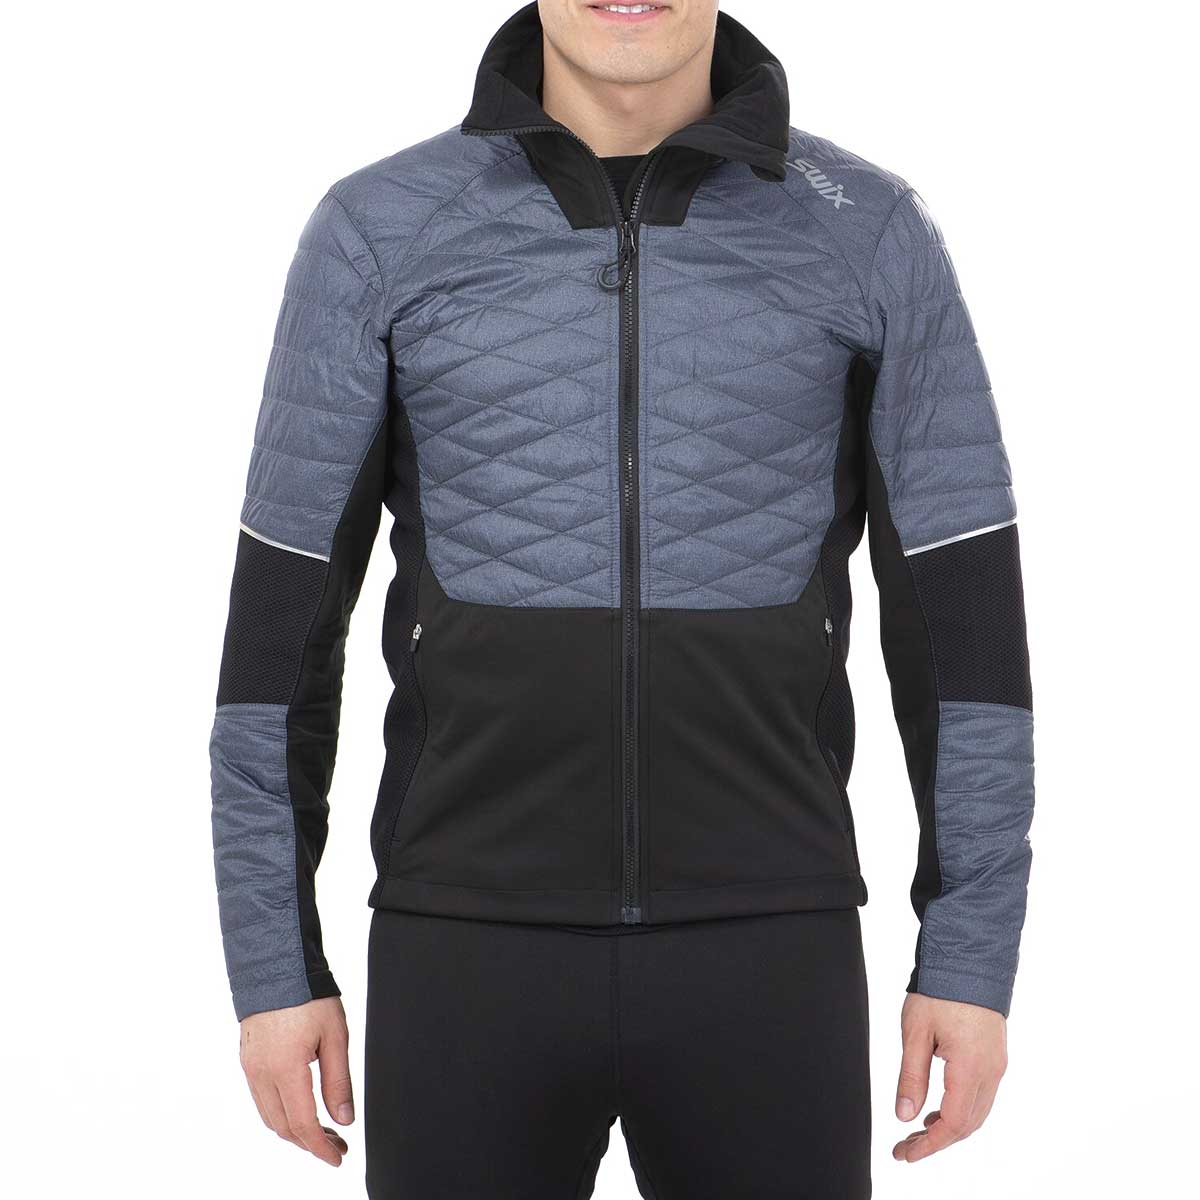 Swix Men's Keltten Hybrid Jacket in Heather Charcoal